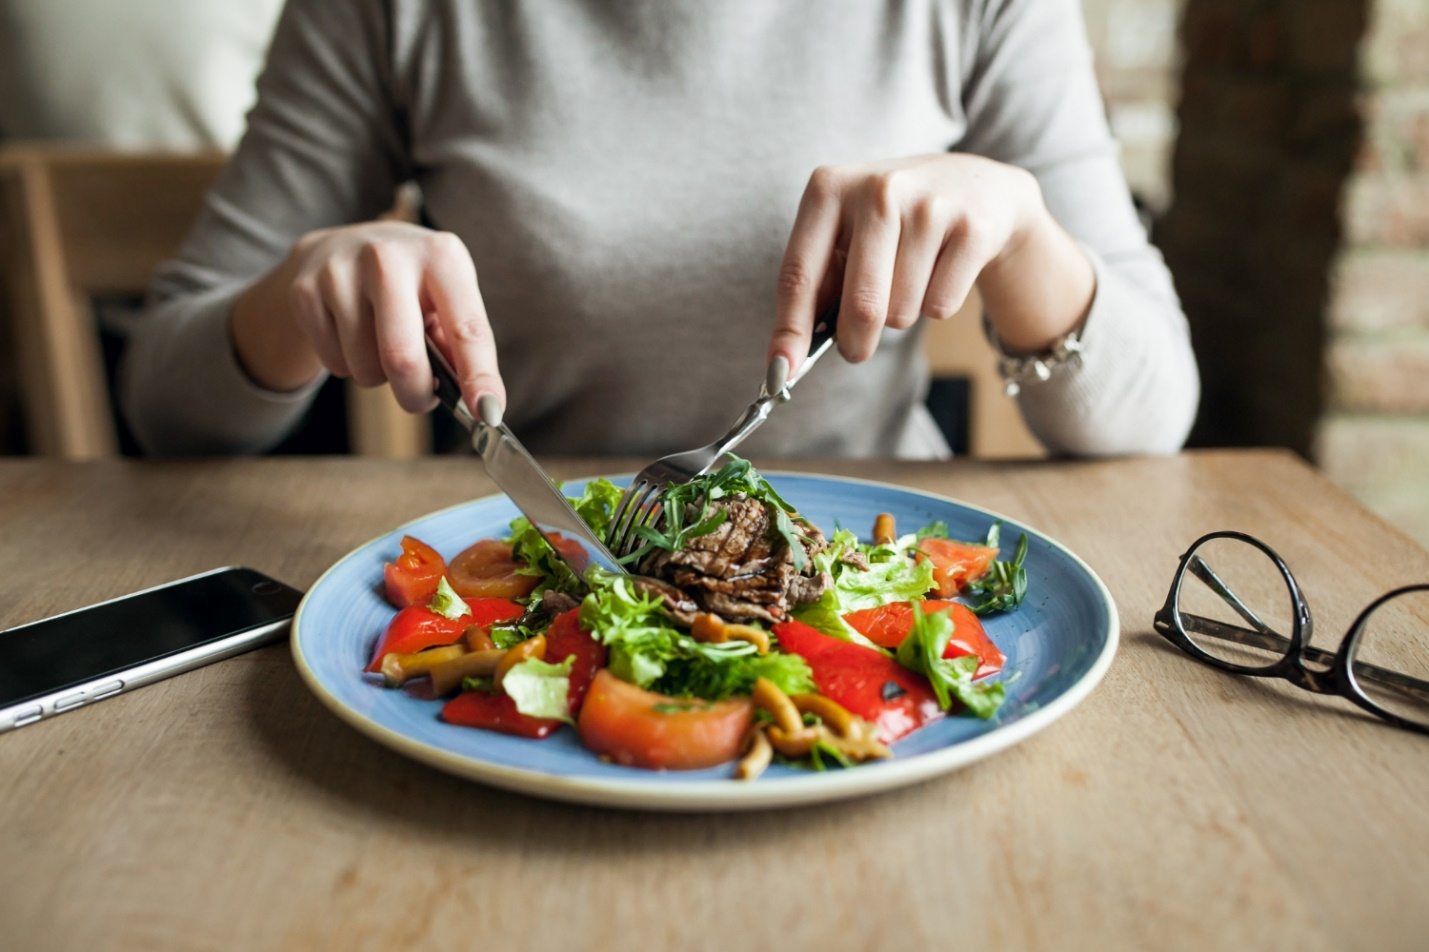 Easy Keto Lunches: The Science behind making Easy Keto Lunches Bariatric Station